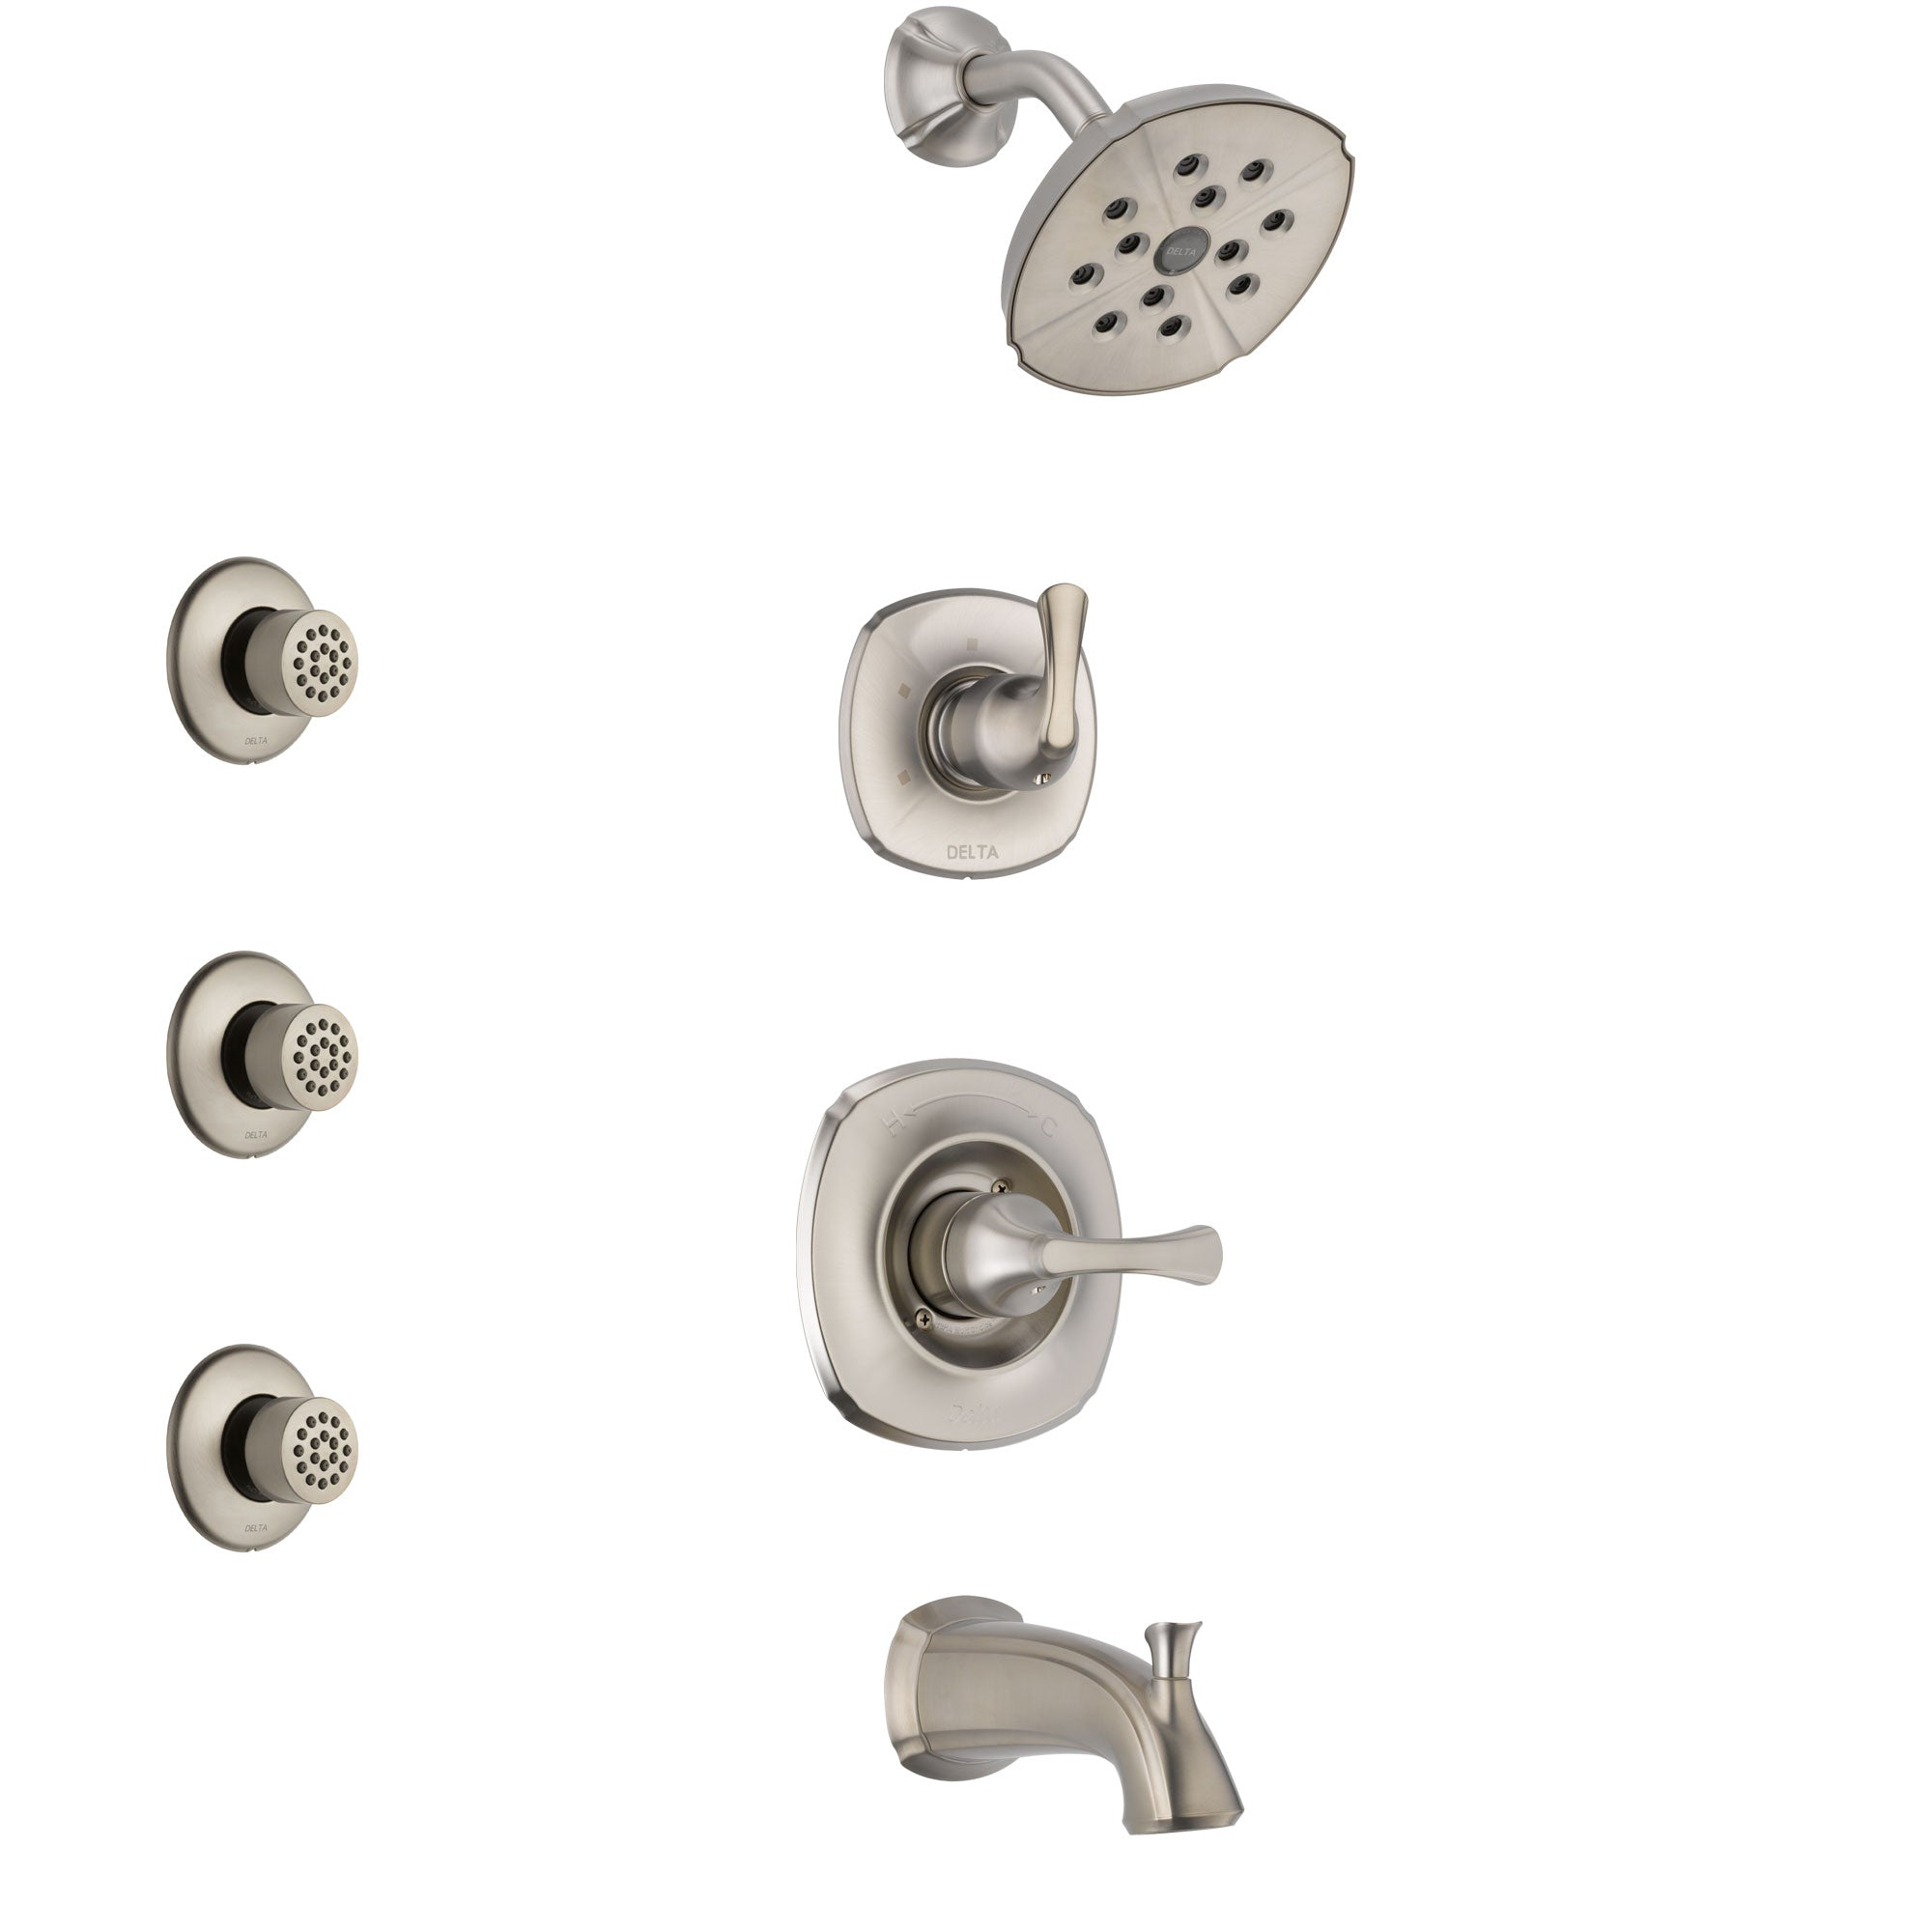 Delta Addison Stainless Steel Finish Tub and Shower System with Control Handle, 3-Setting Diverter, Showerhead, and 3 Body Sprays SS14492SS2